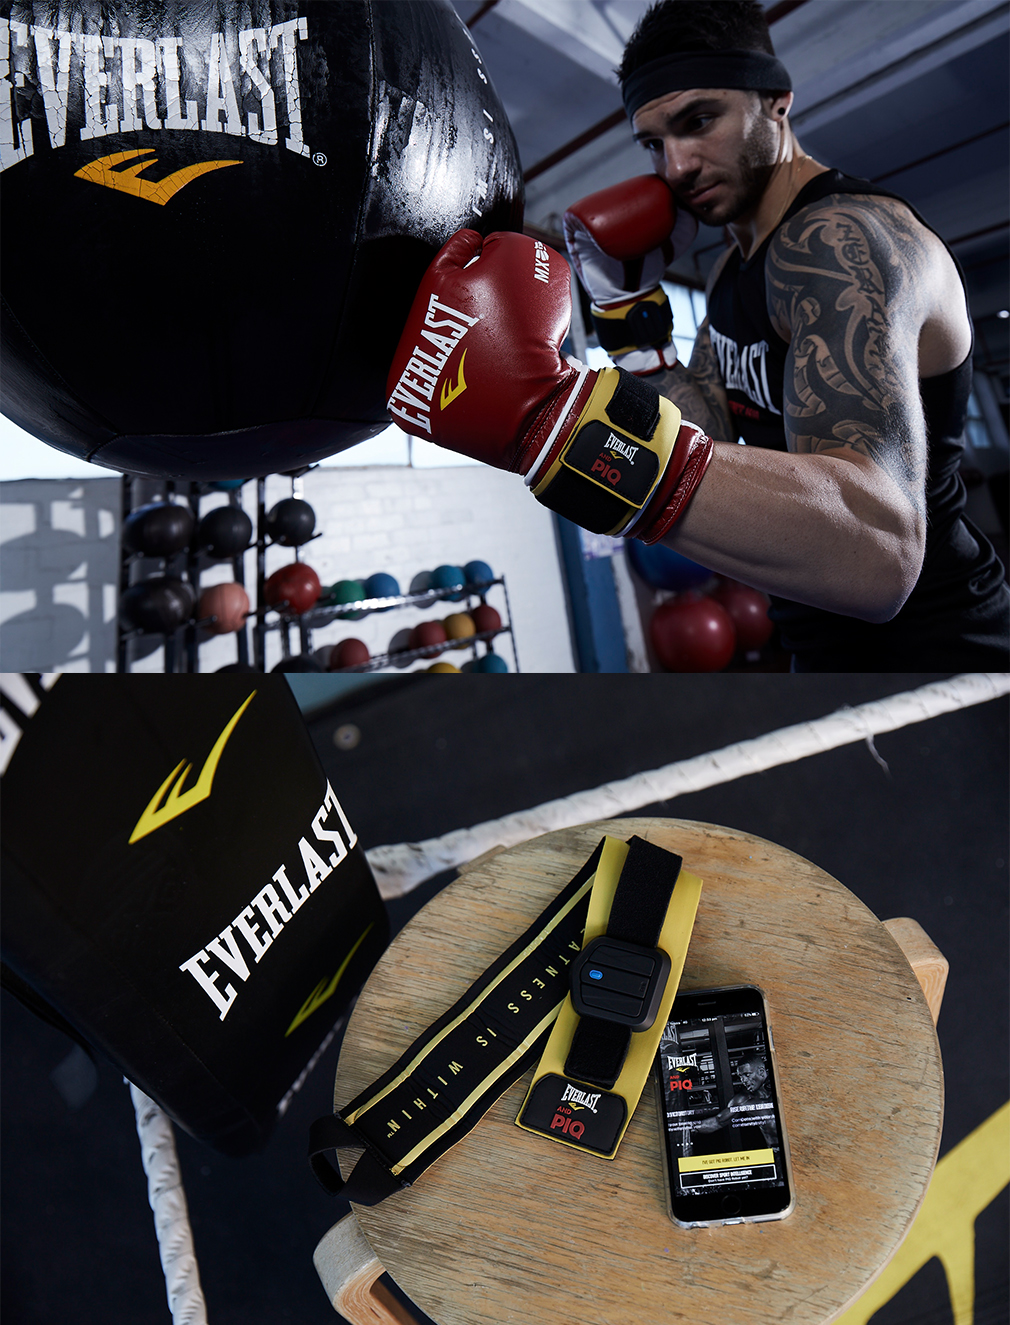 Everlast x PIQ by Designworks Clothing Company in Melbourne VIC